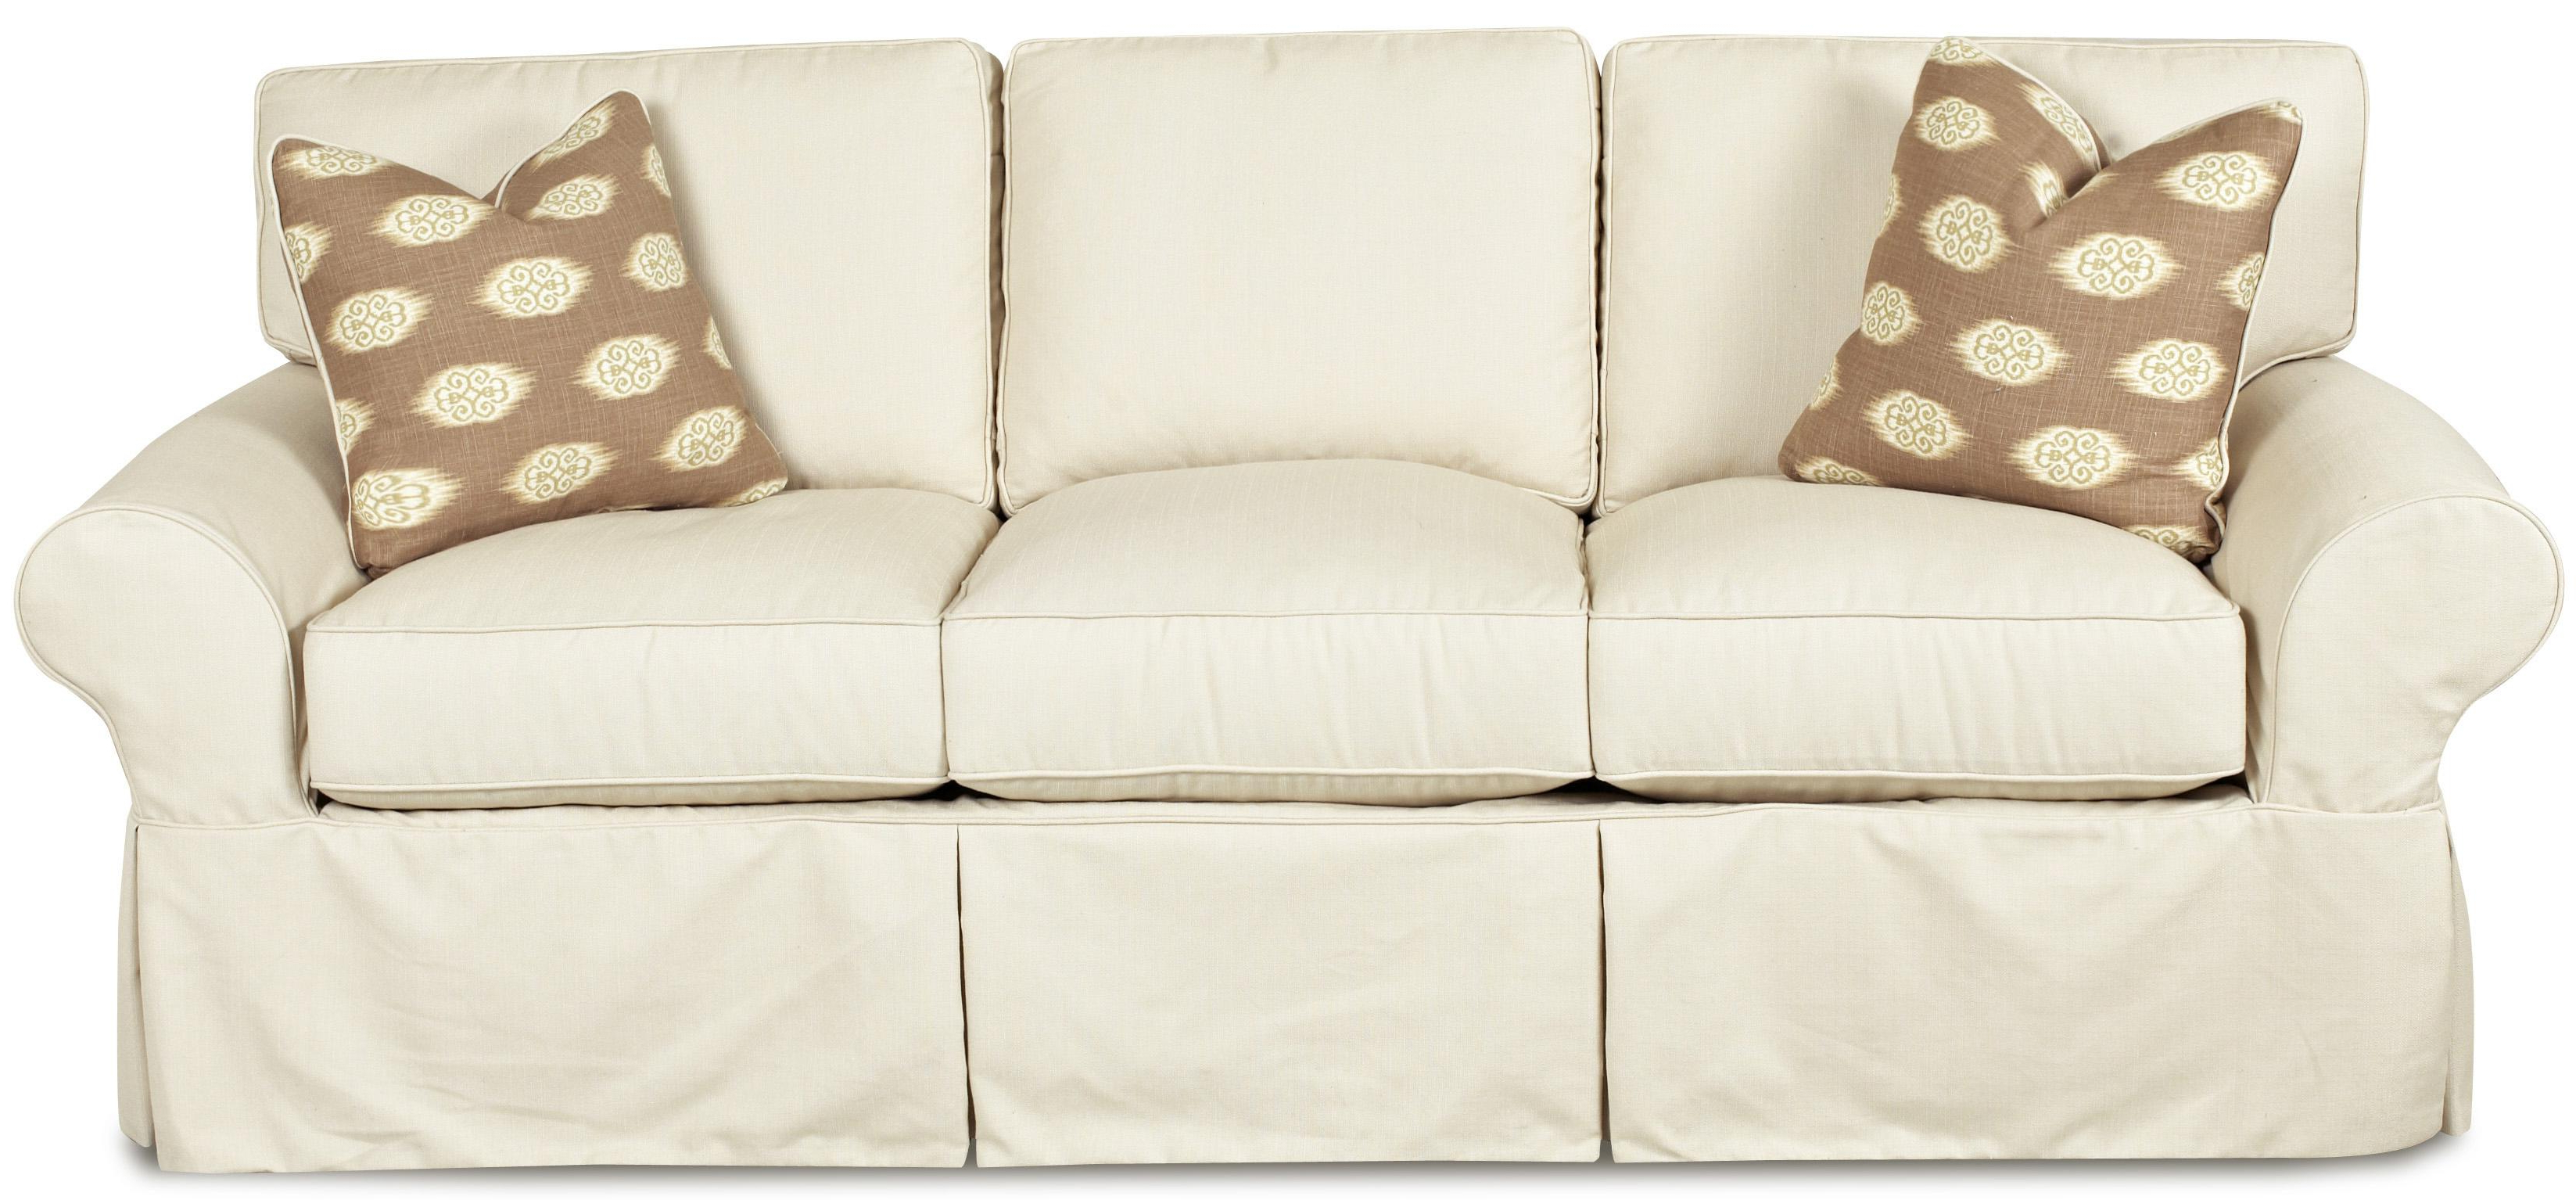 2019 Klaussner Patterns Slipcovered Sofa With Rolled Arms And Tailored With Slipcovers For Chairs And Sofas (View 2 of 20)